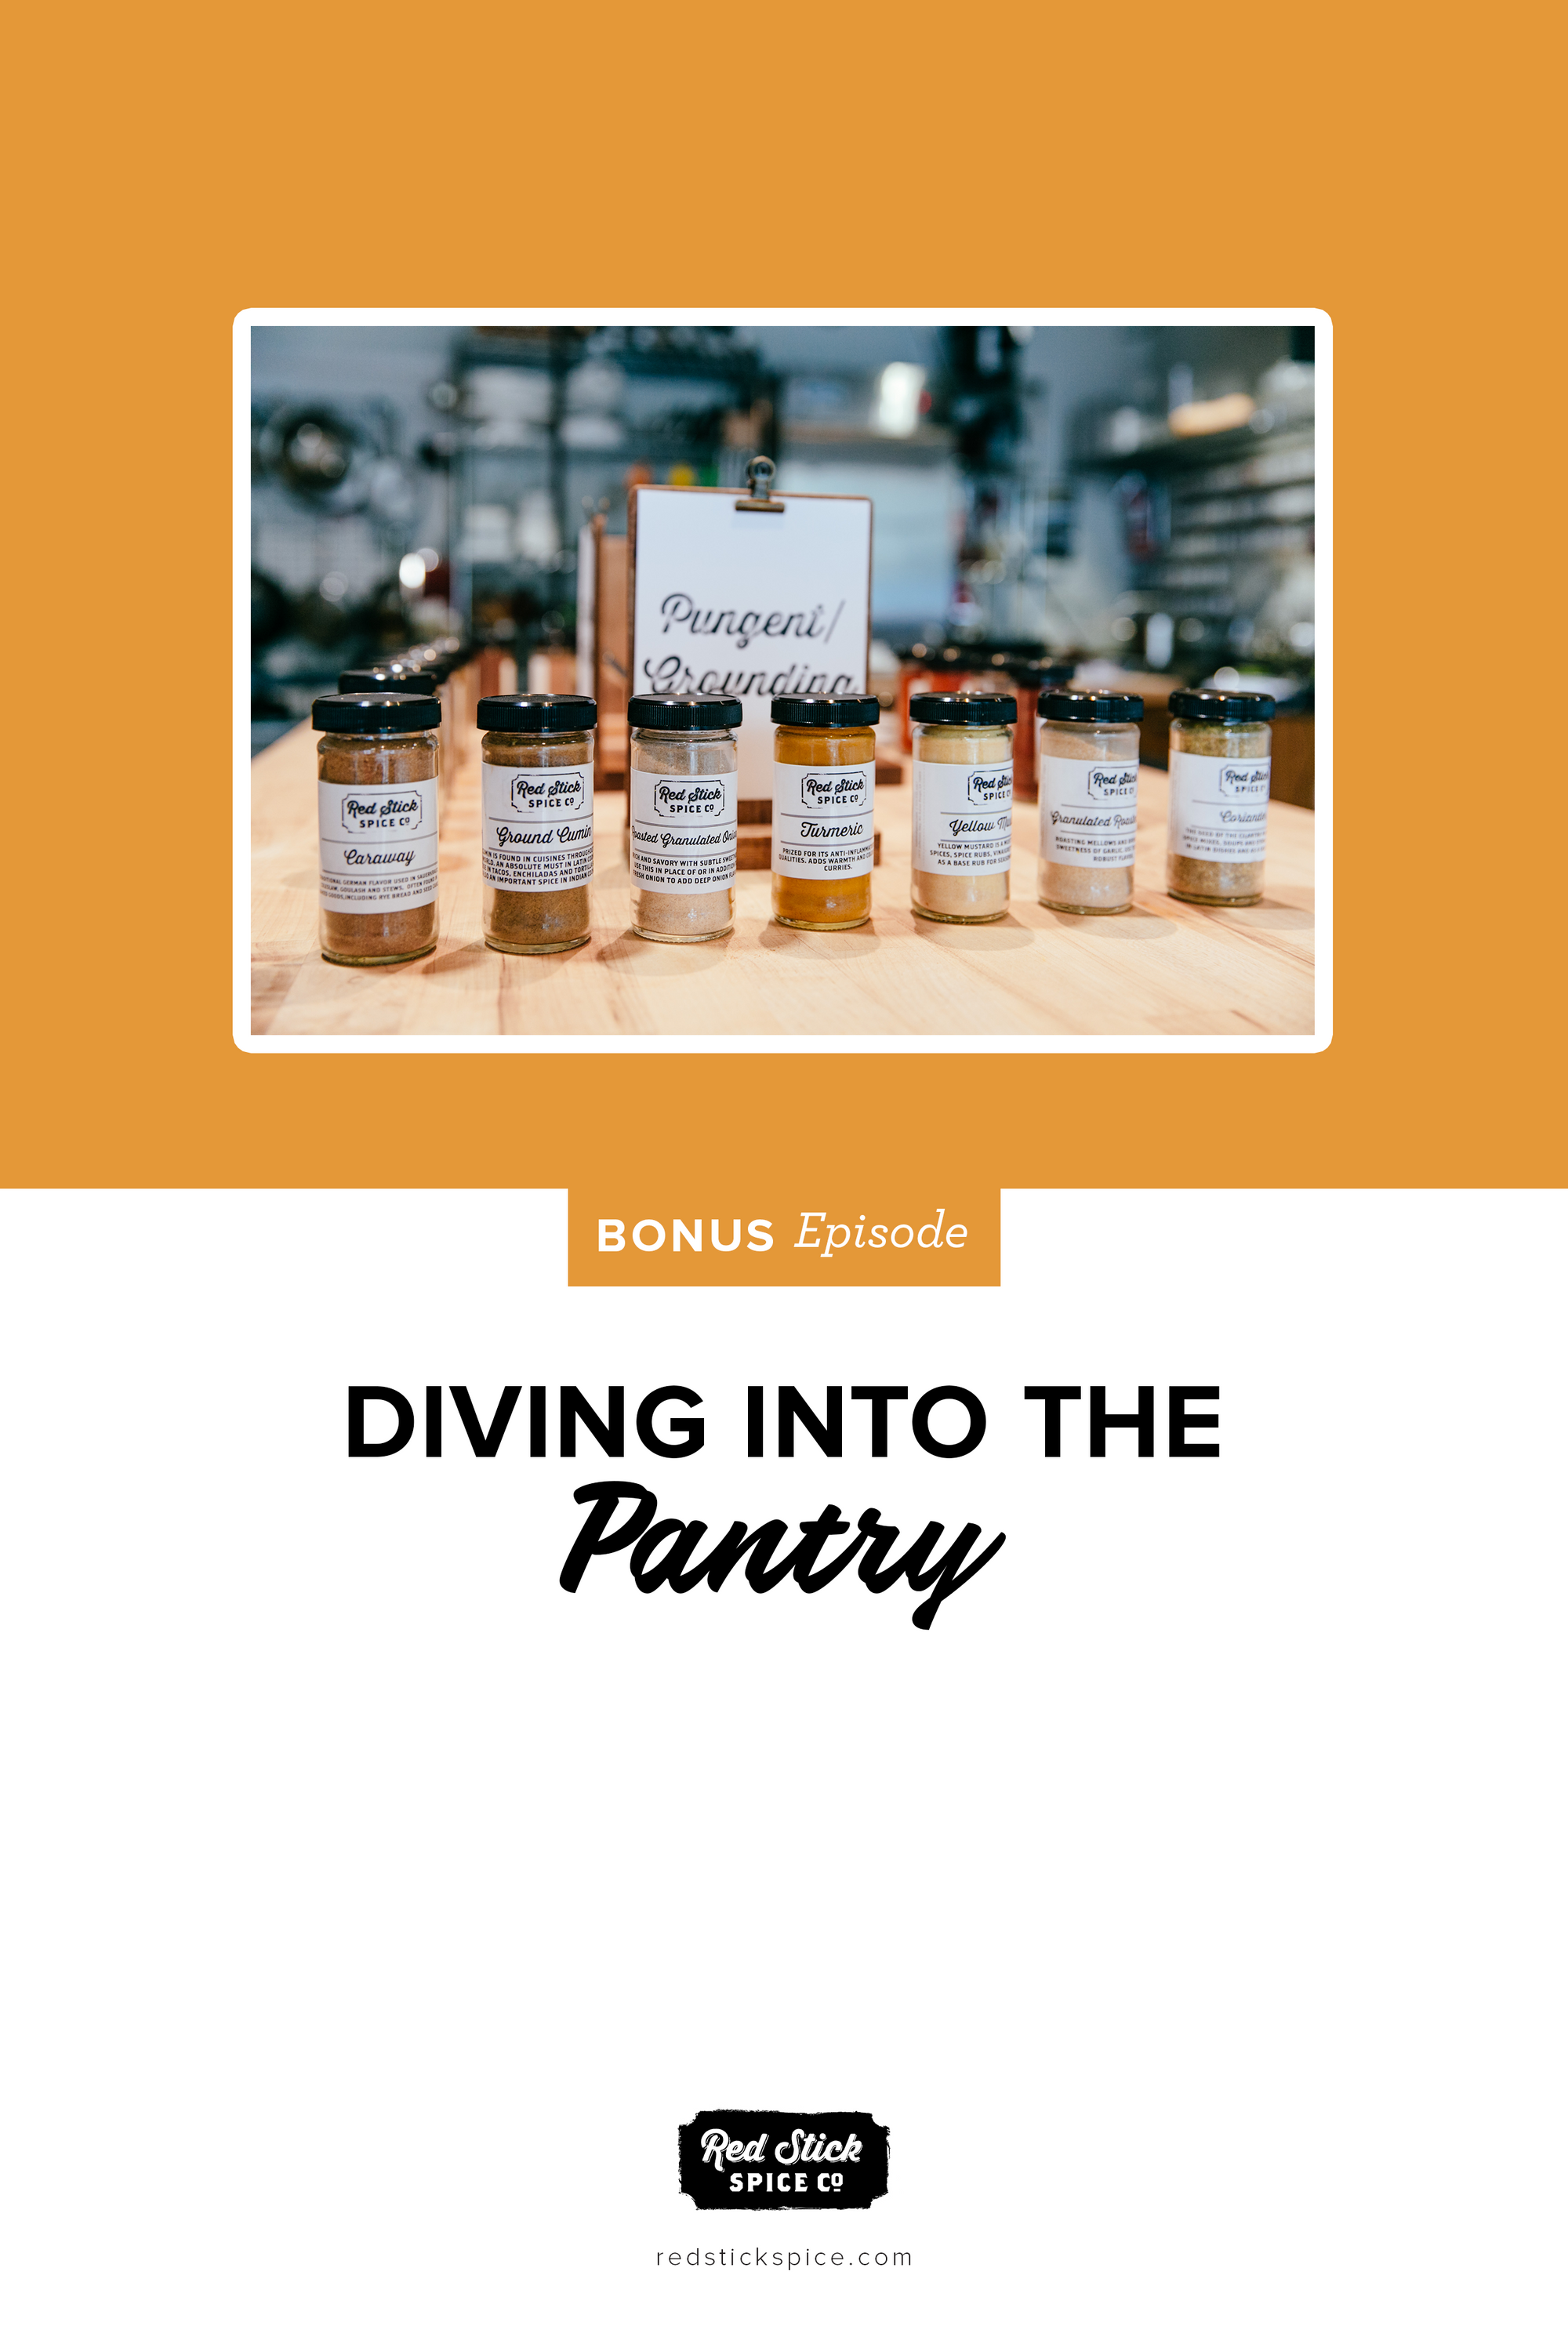 BONUS EPISODE: DIVING INTO THE PANTRY